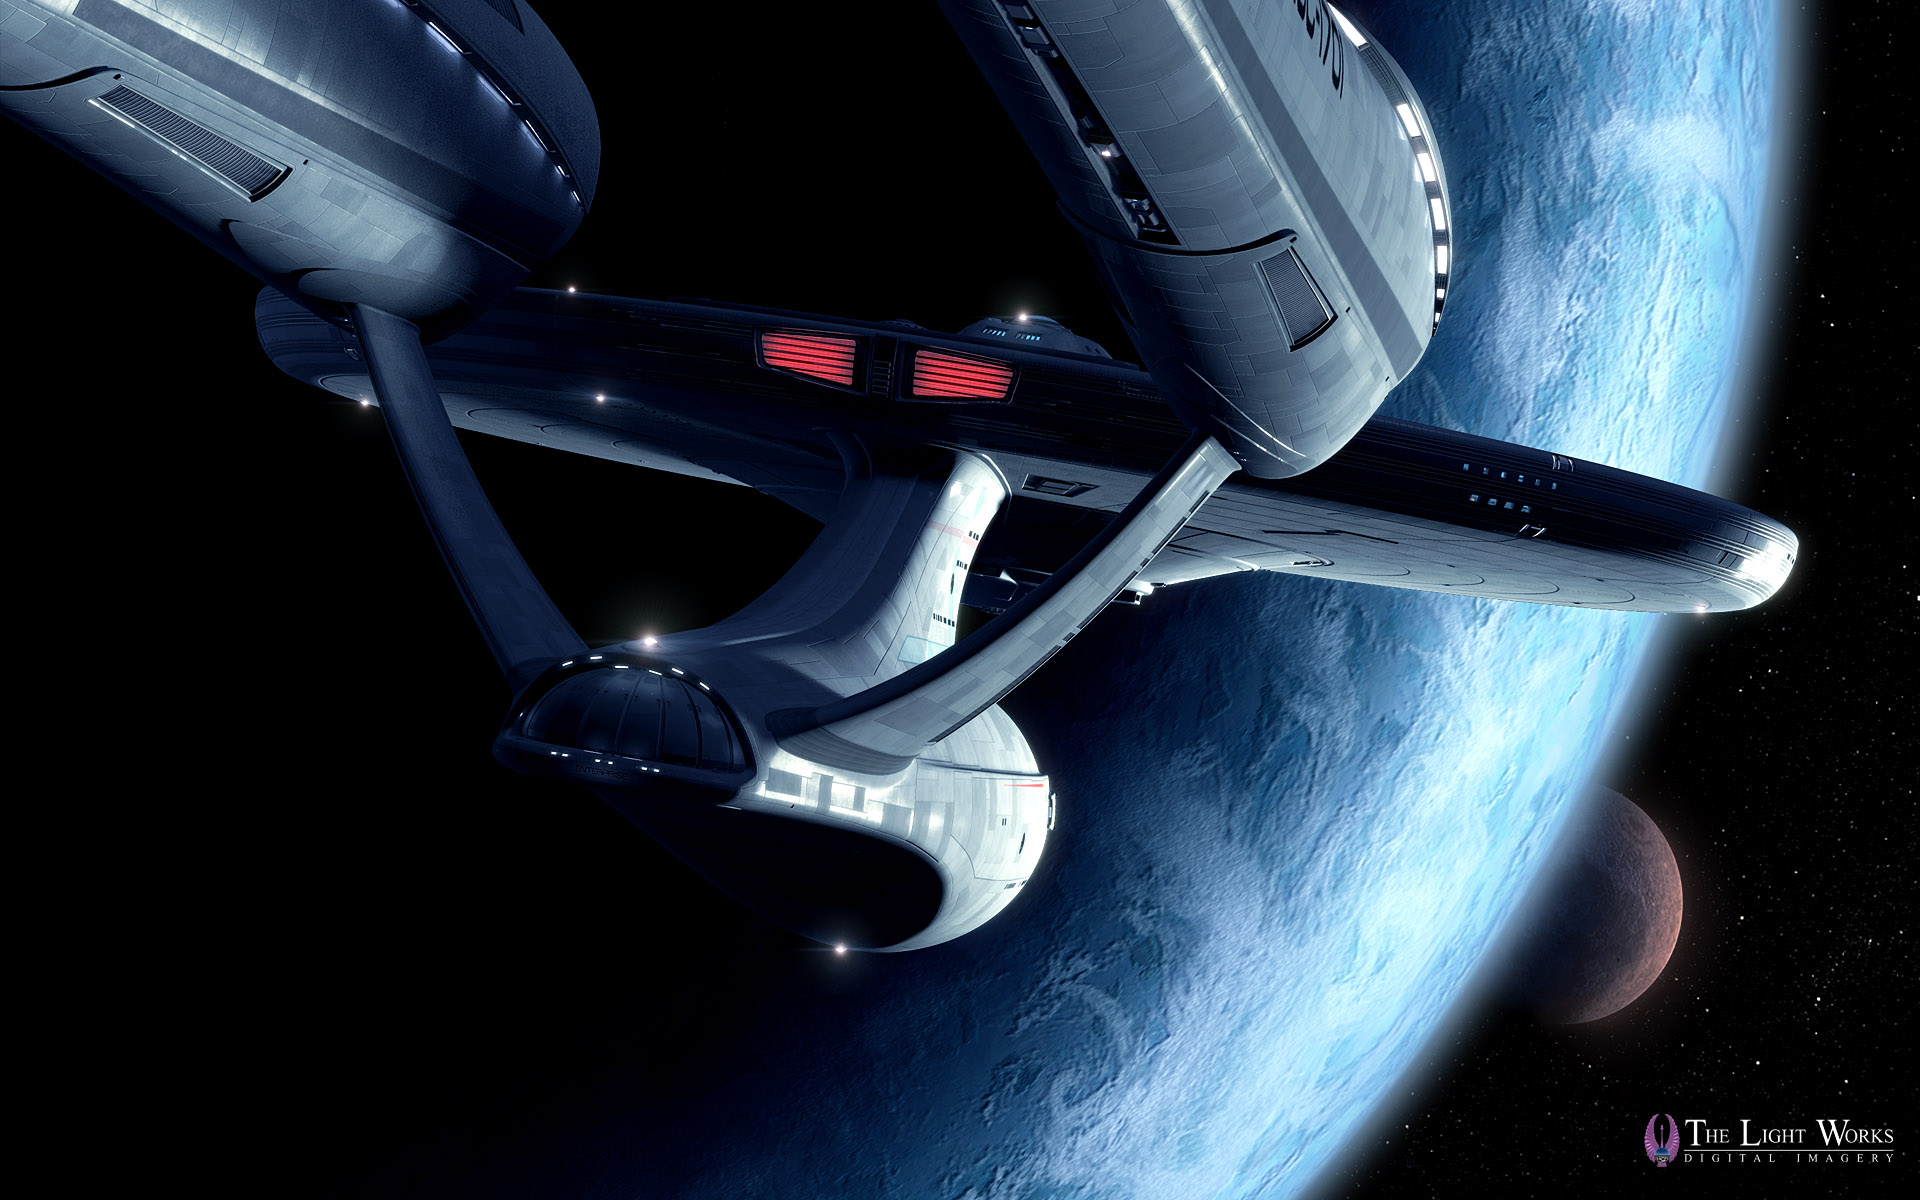 First Look at Tobias Richter's Star Trek Movie USS Enterprise Wallpapers